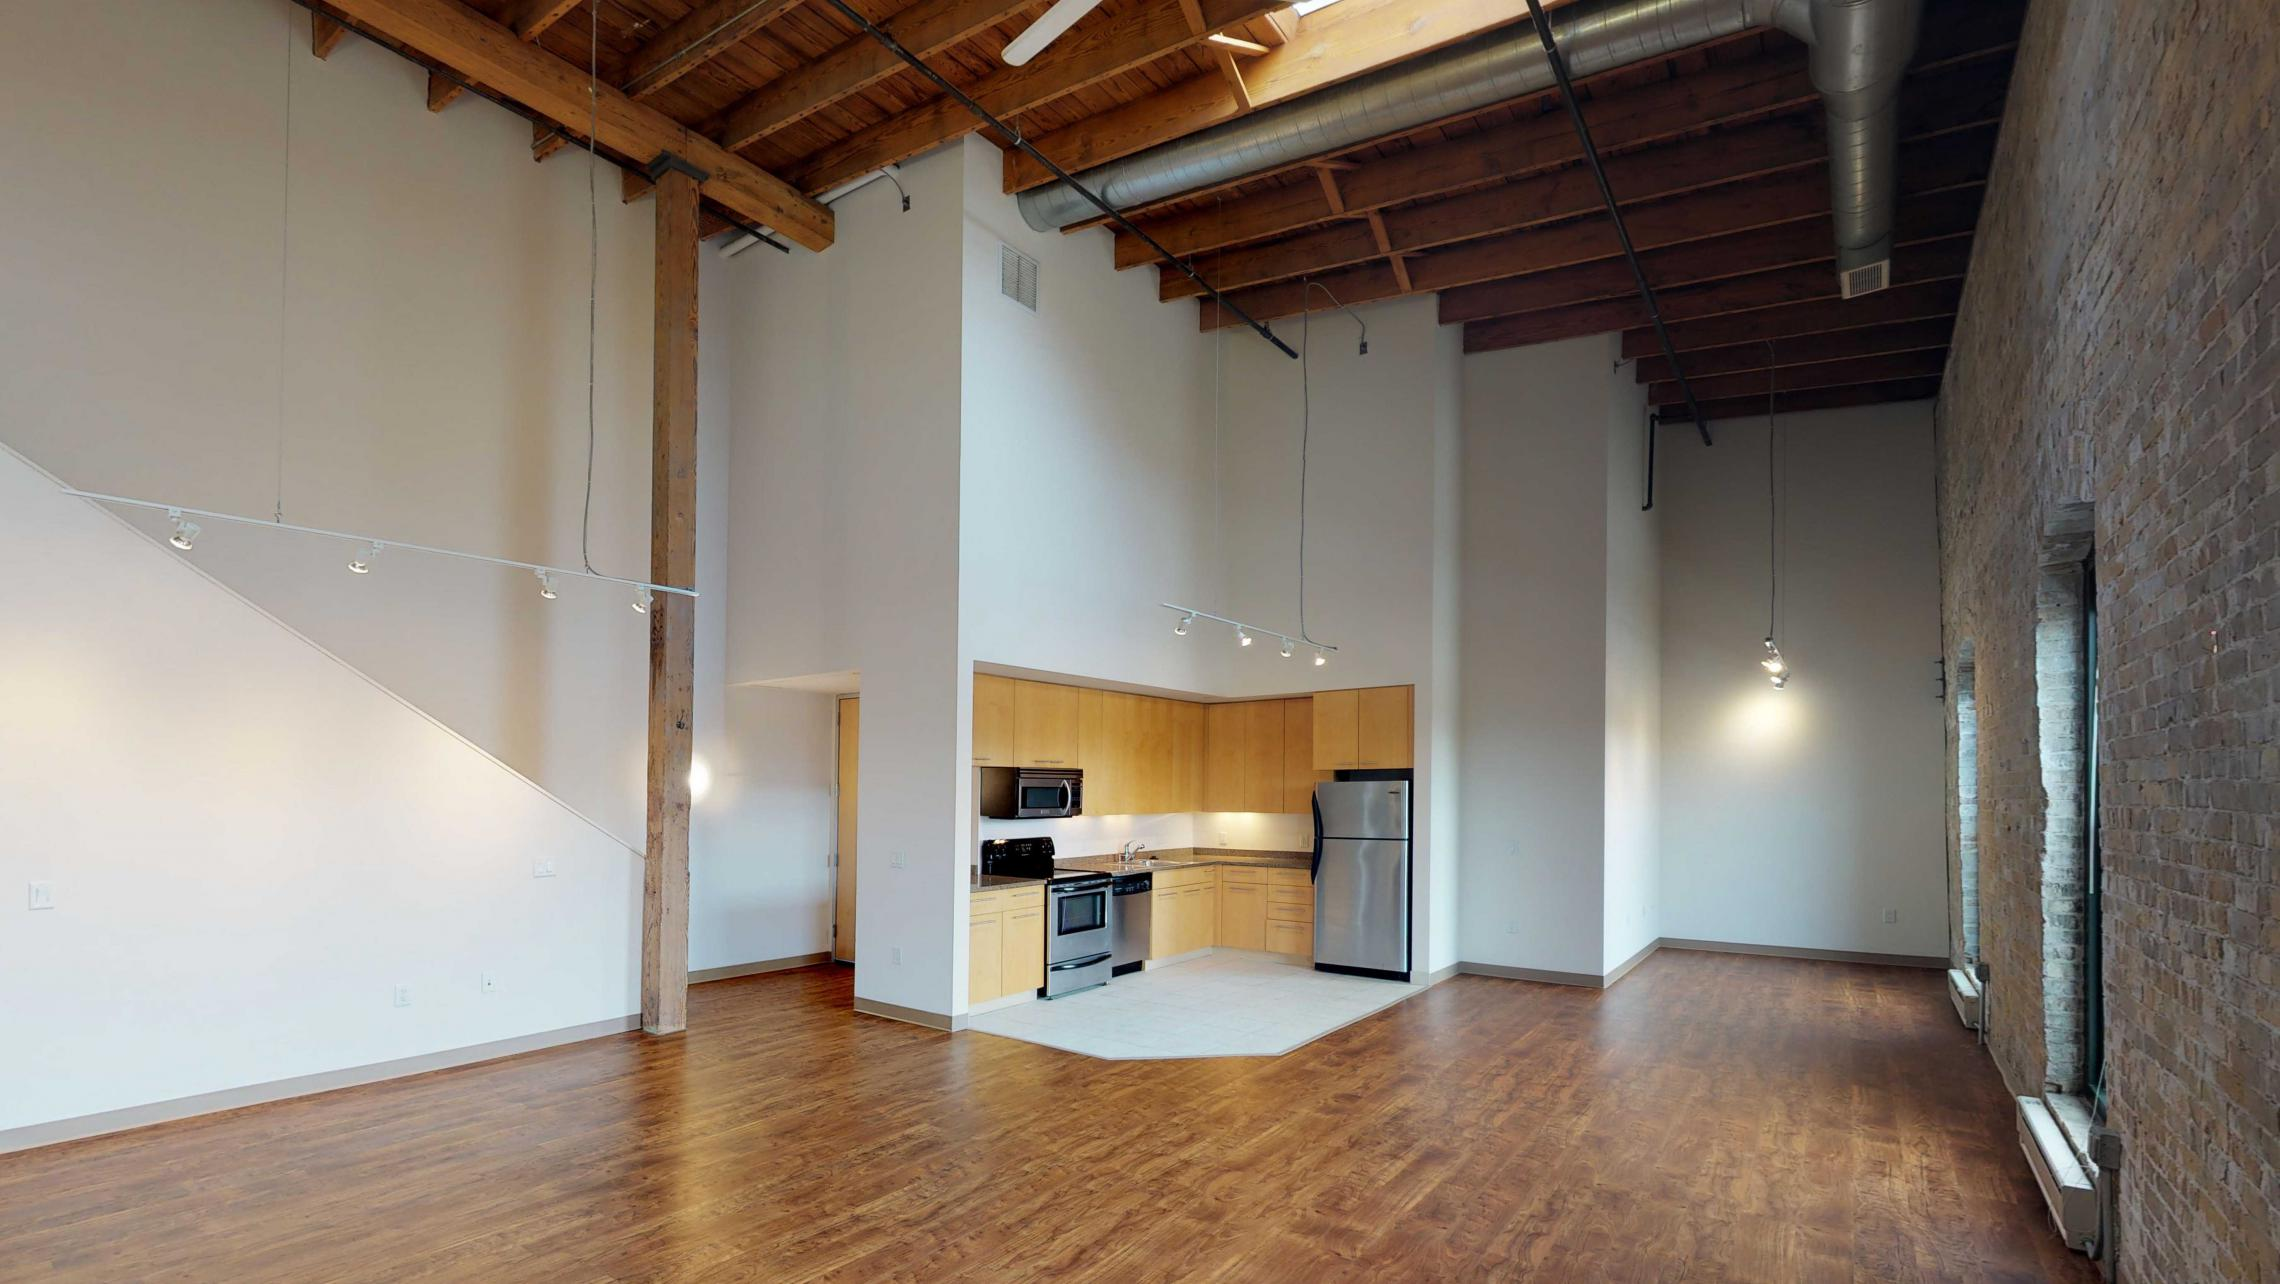 Tobacco-Lofts-Apartment-E306-Historic-Lofted-Two-Bedroom-Downtown-Madison-Yards-Exposures-Brick-Design.jpg